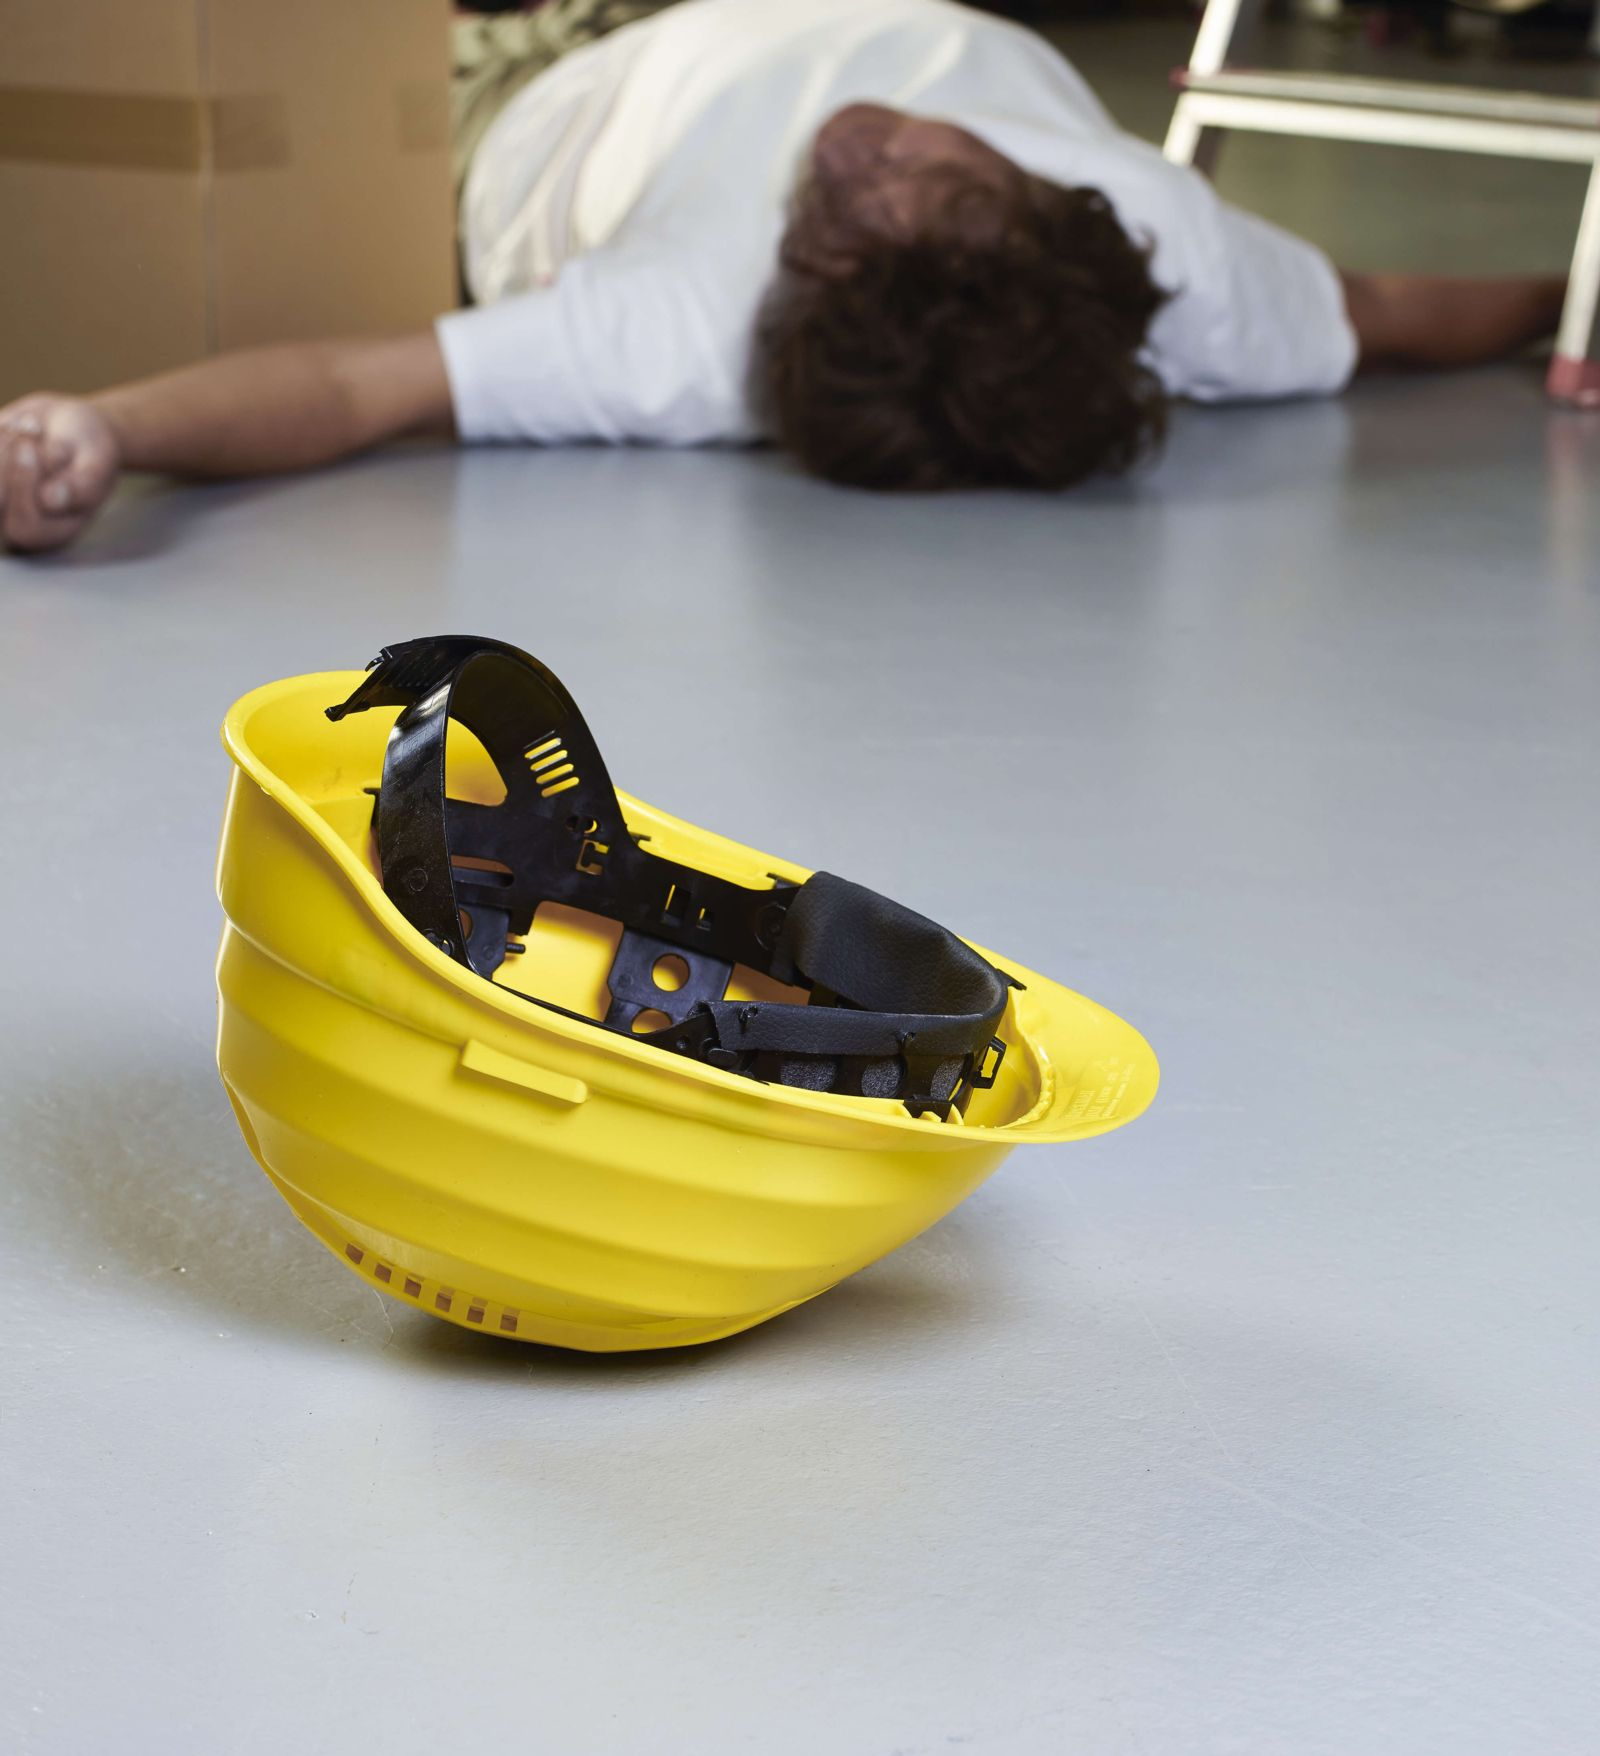 Injured Worker At Nuclear Power Plant